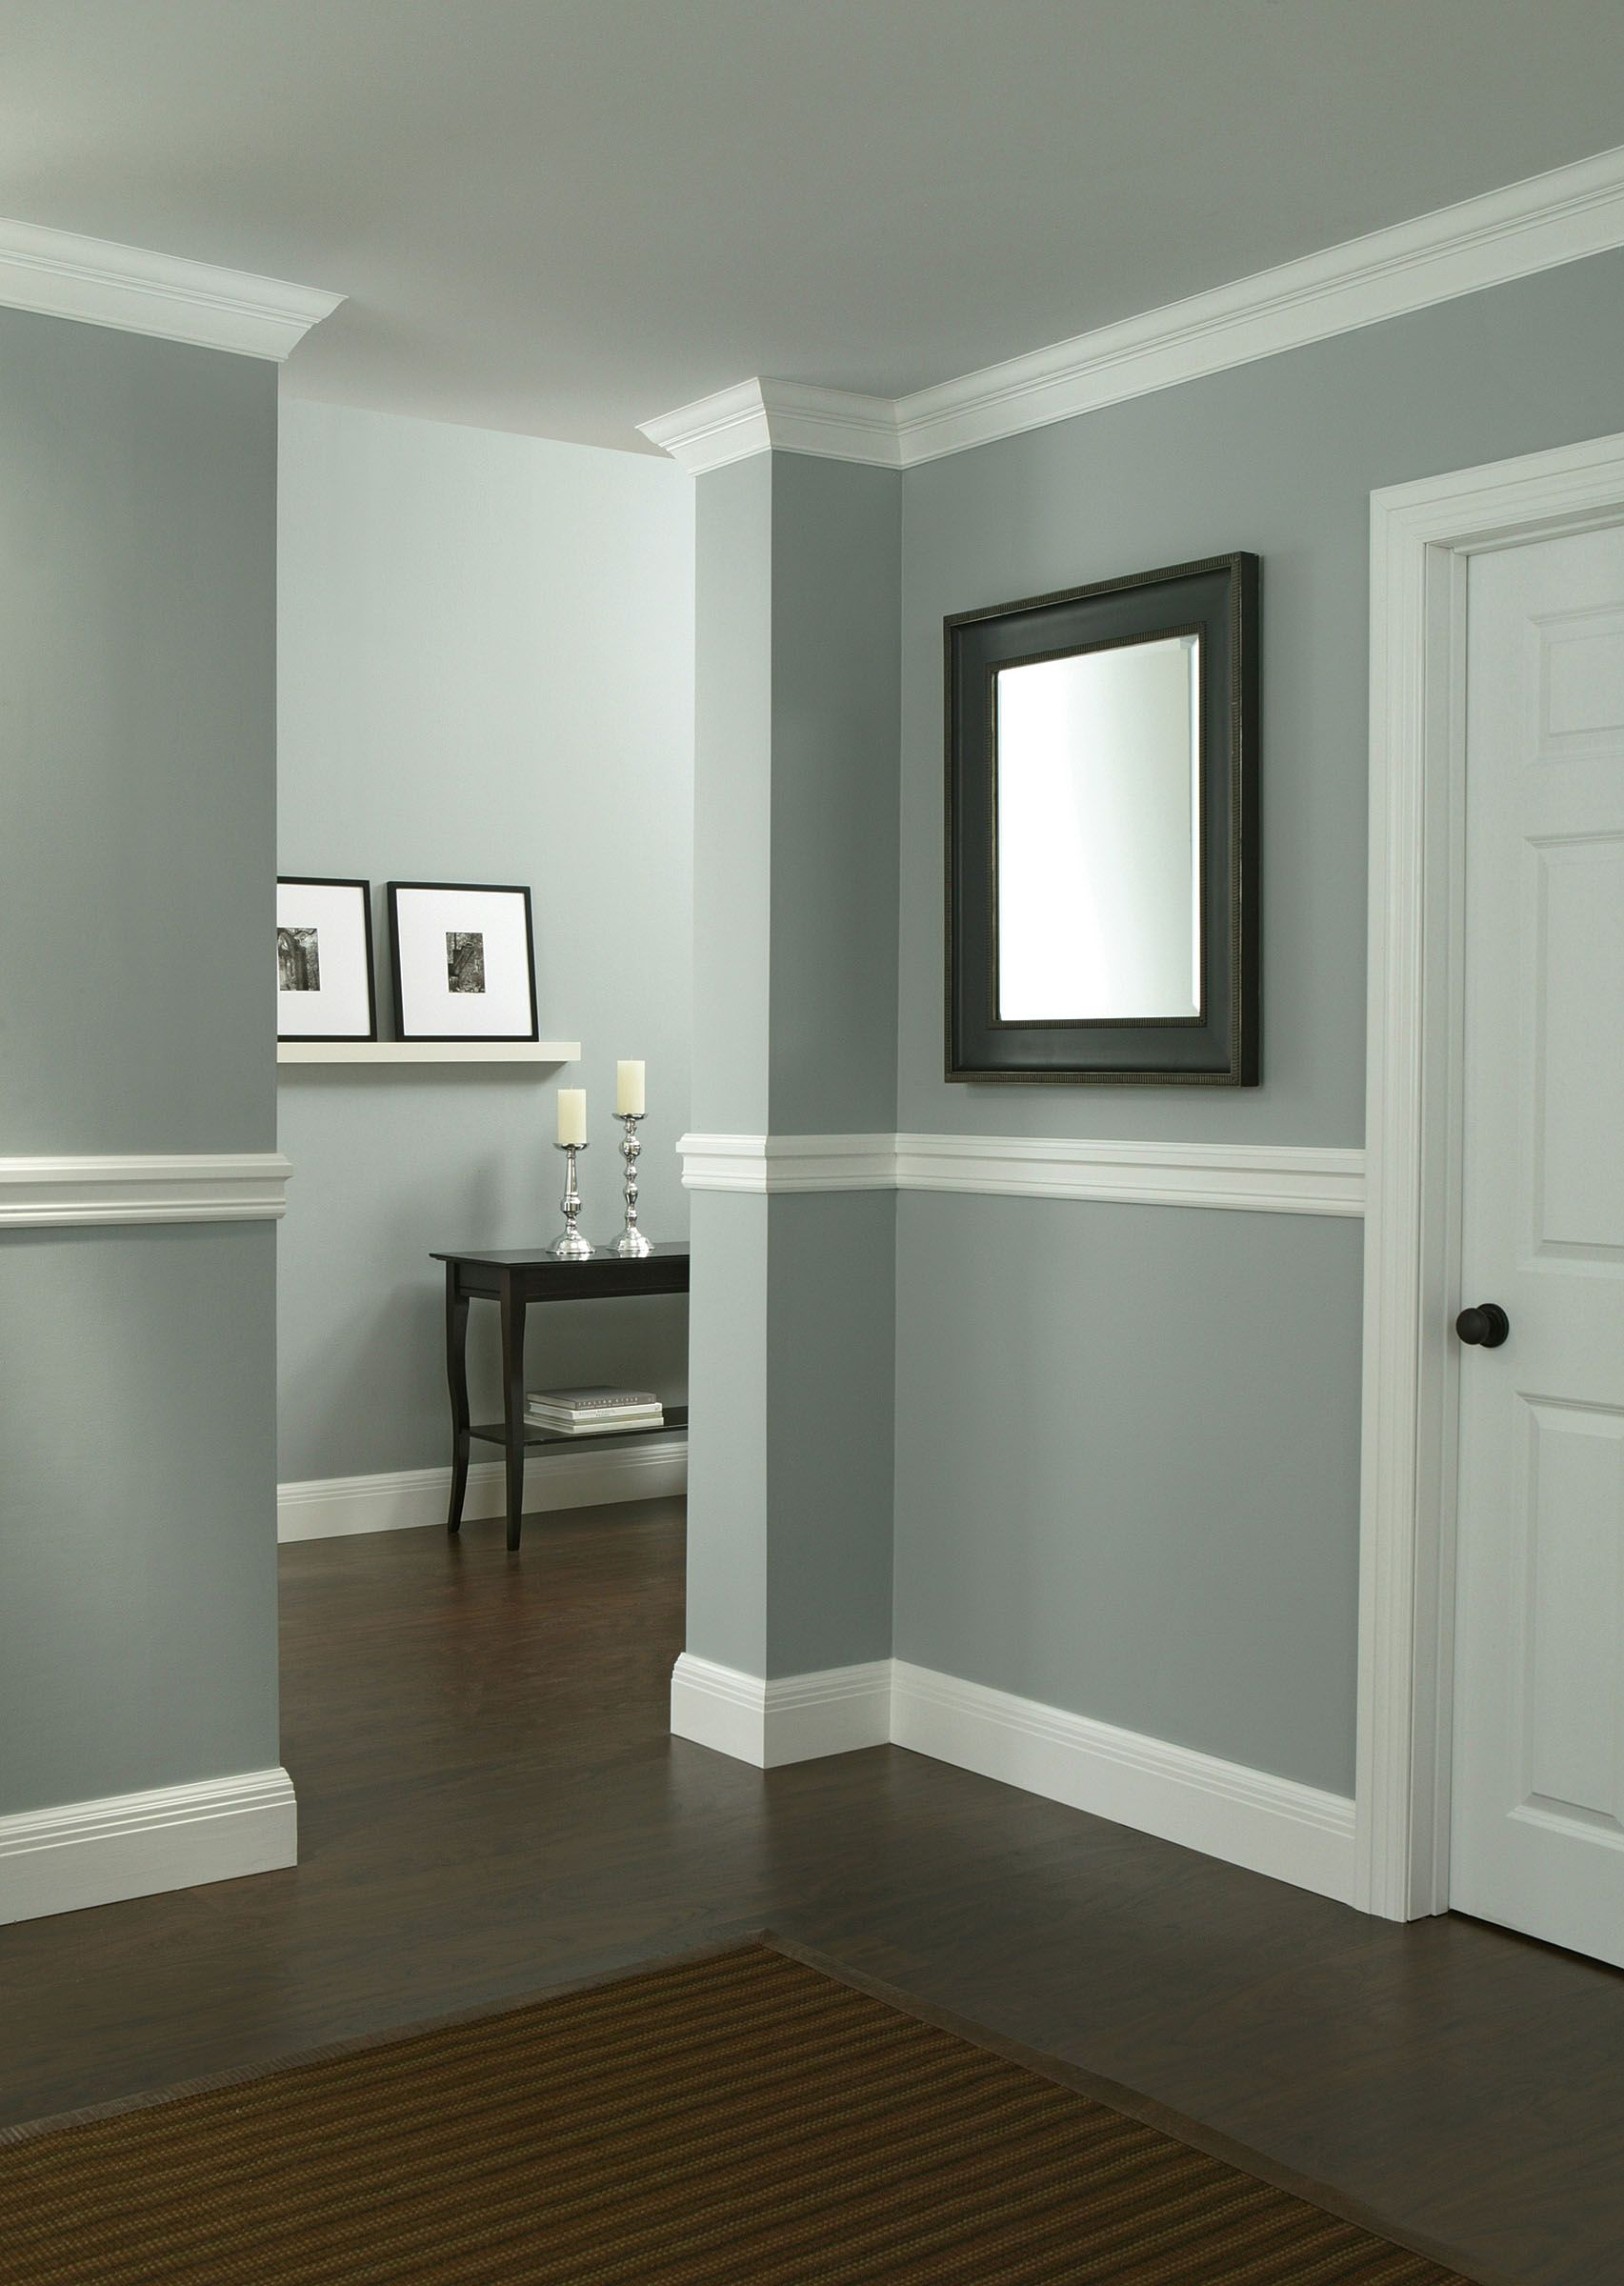 Protect walls from scuffs and dents by installing chair rail moulding in high traffic areas Master bedroom chair rail